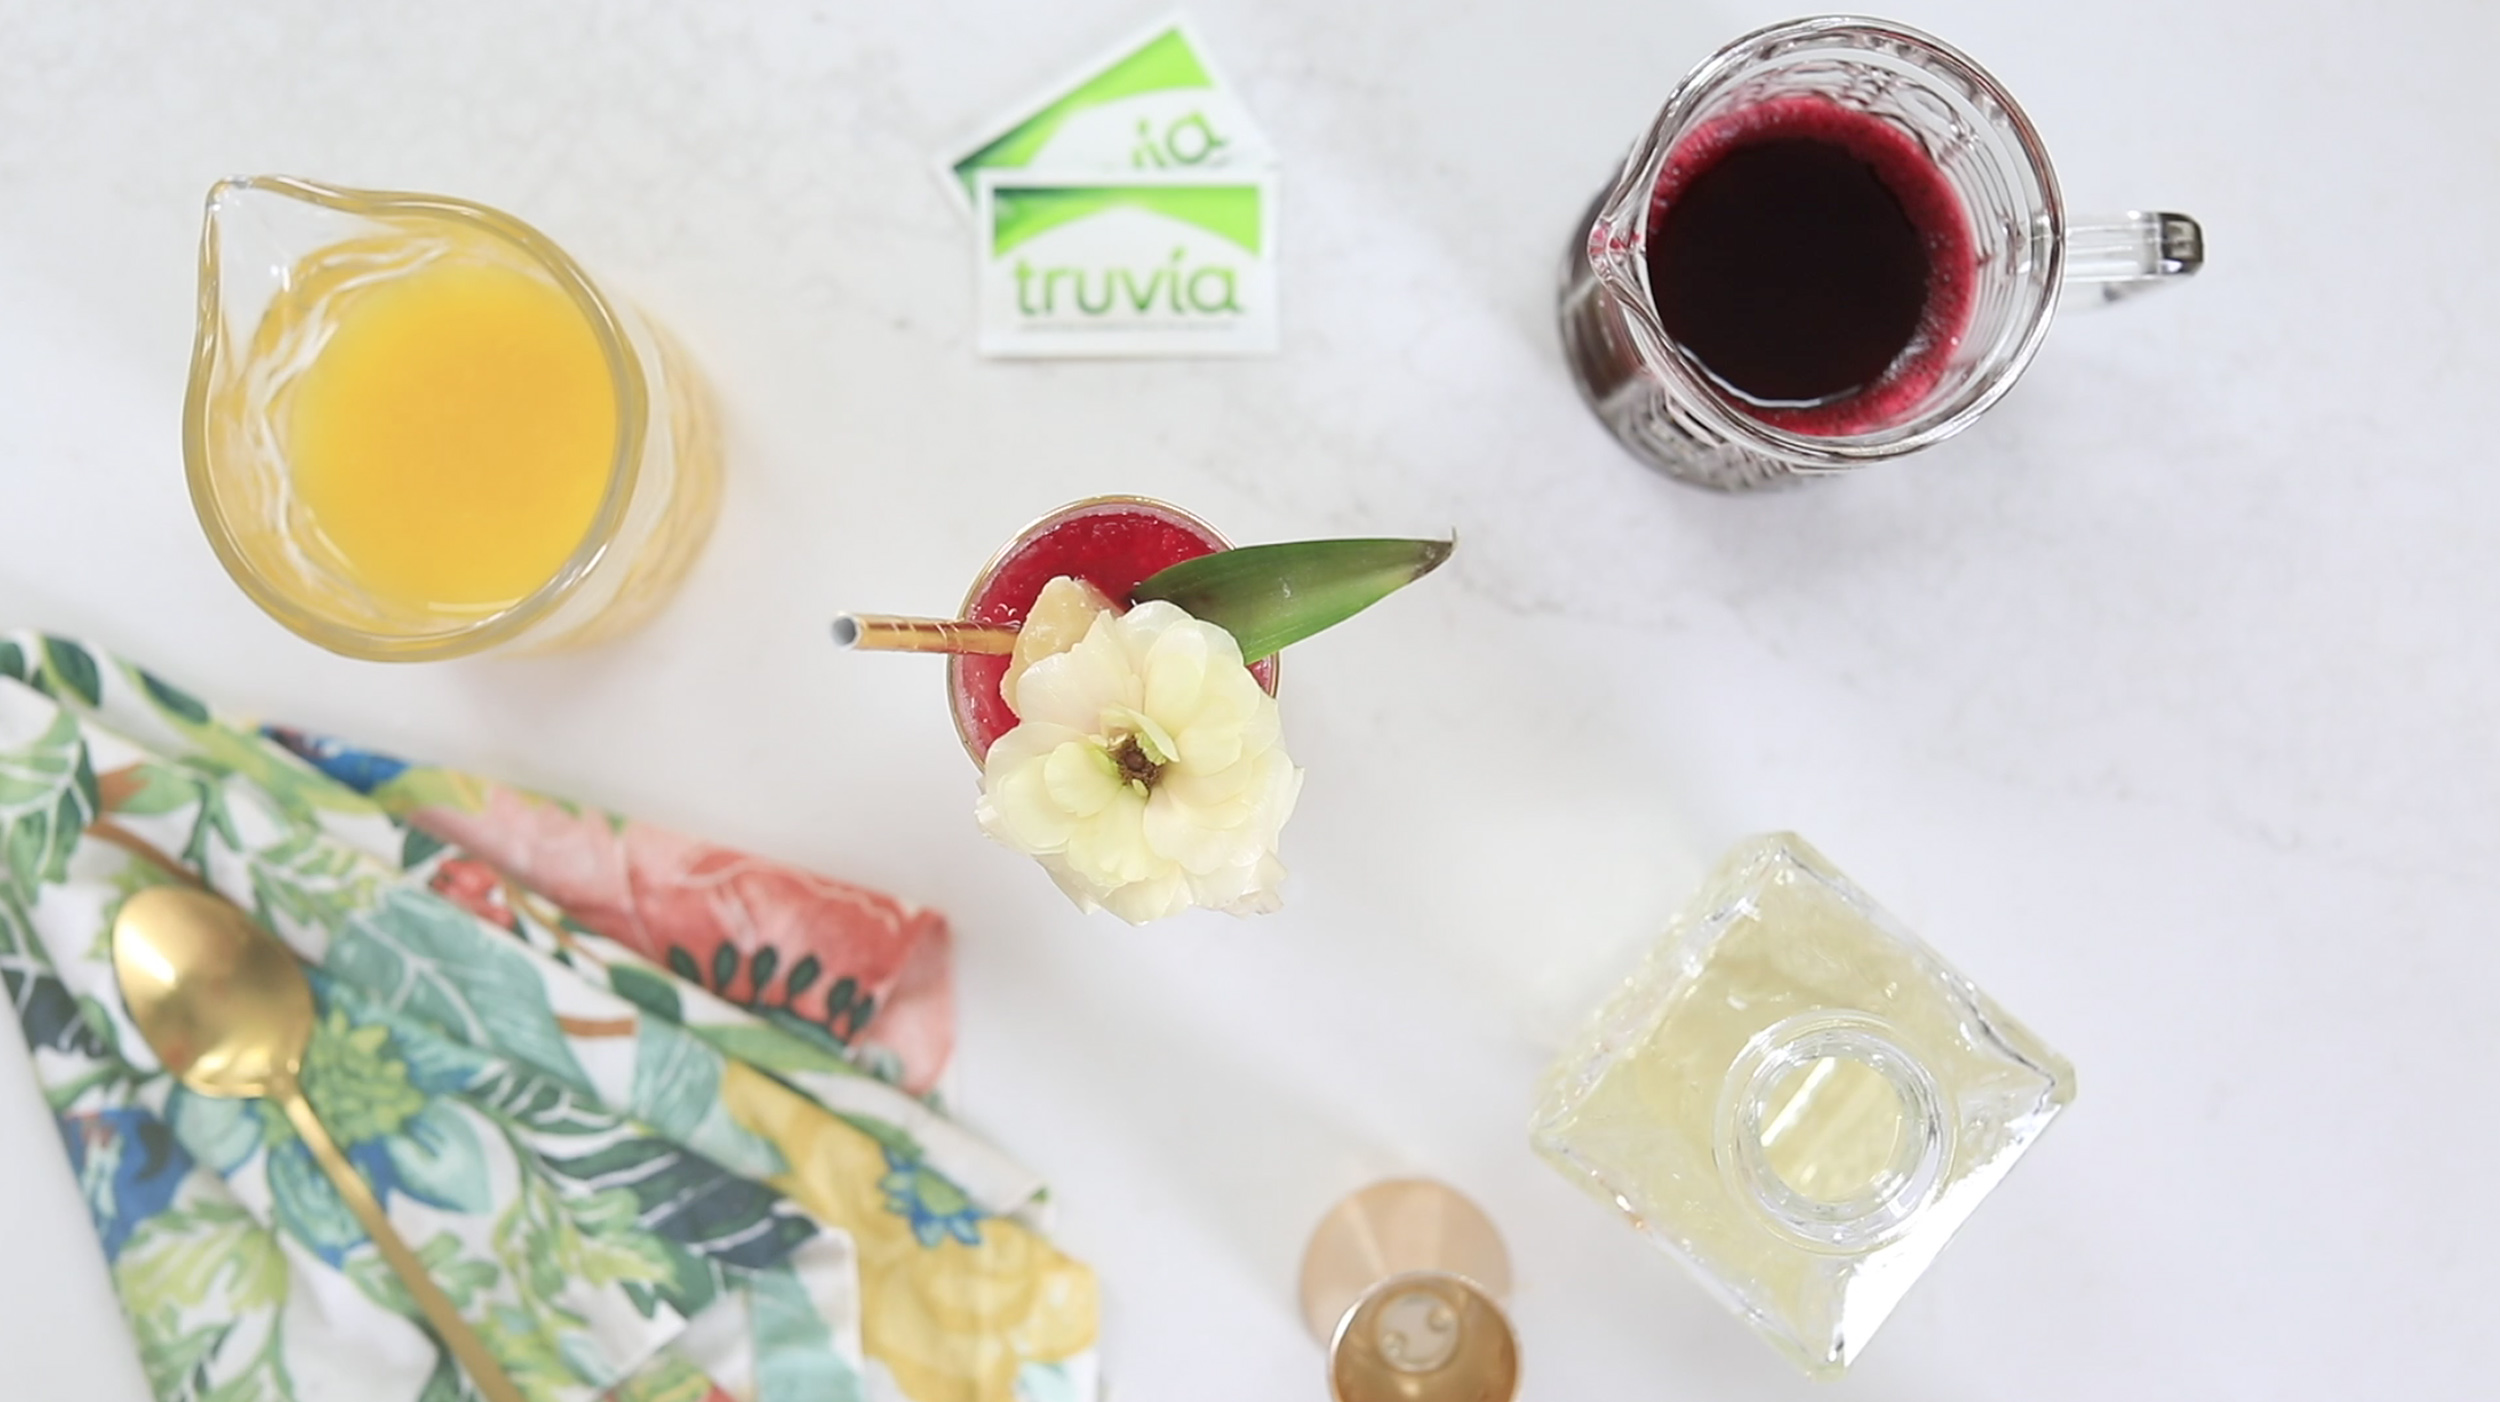 Truvia - BRANDED CONTENT RECIPE VIDEO